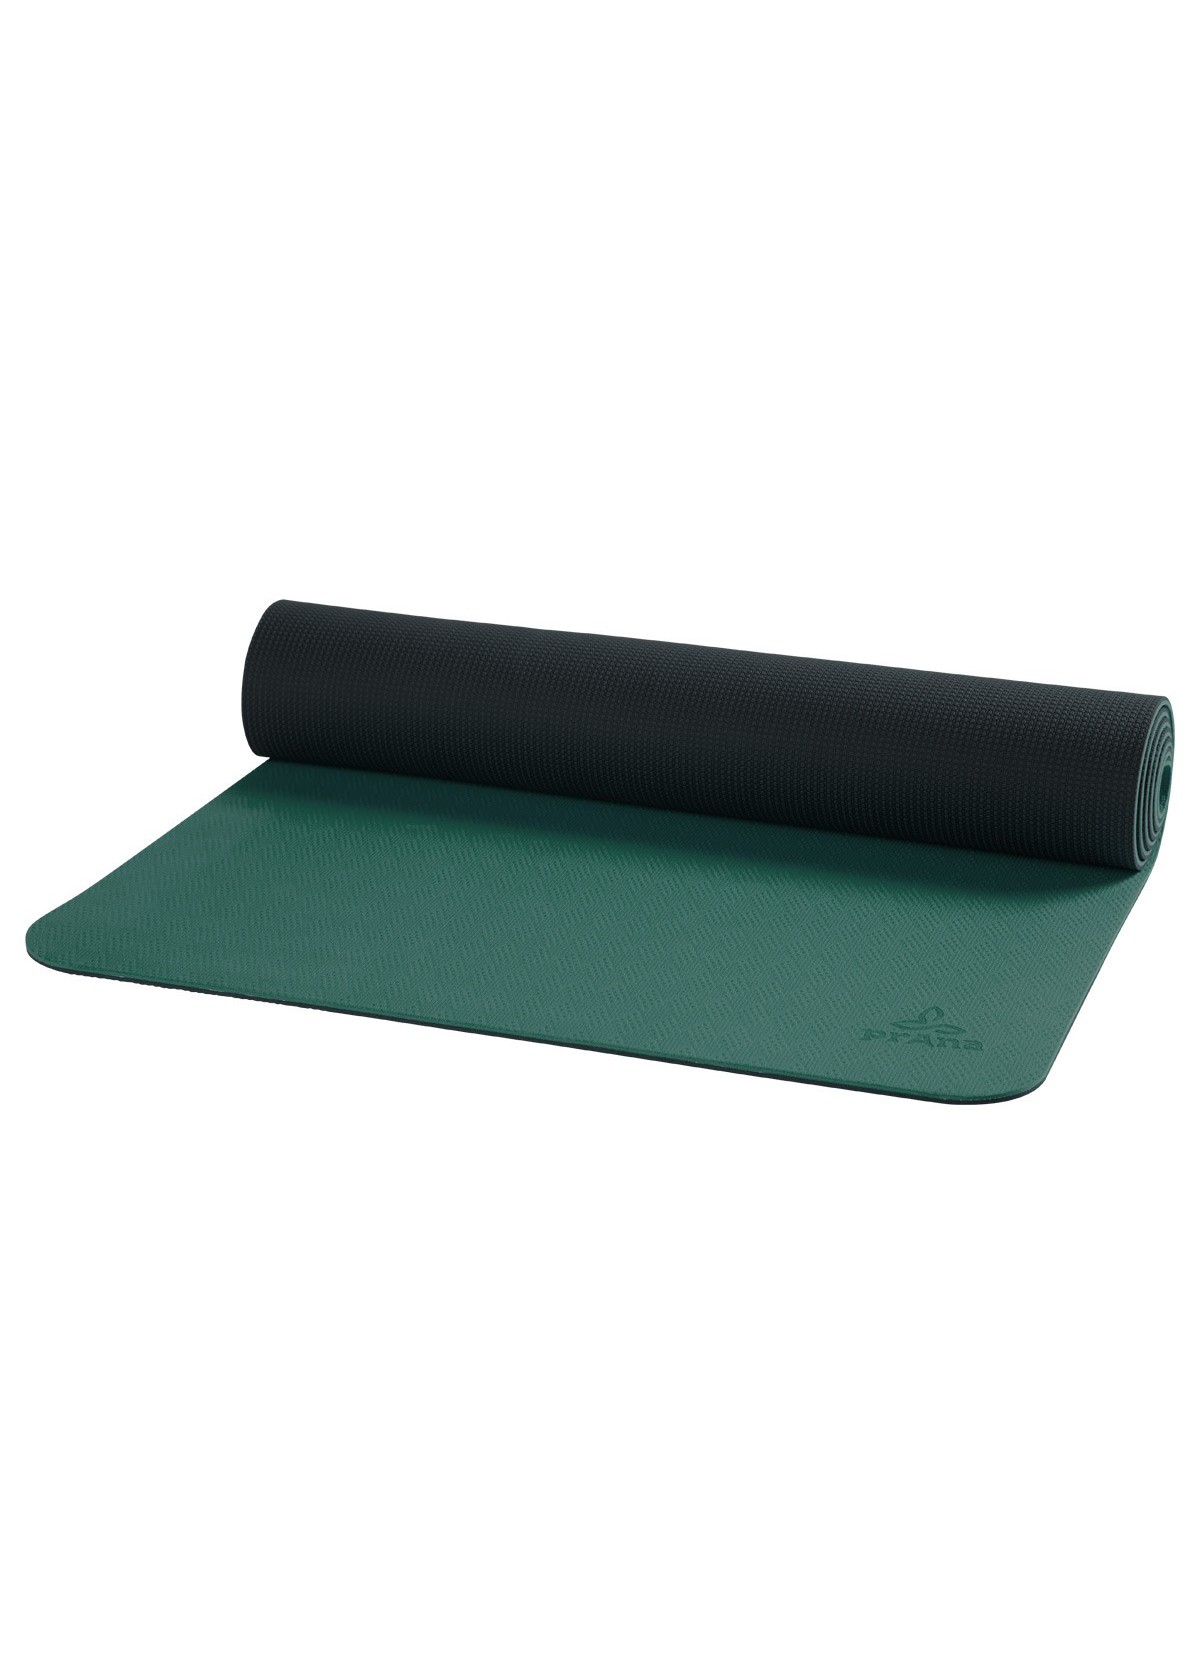 foam home gym brilliant tiles thick for walmart exercise be puzzle extra mat with flooring your mats eva prosource concept